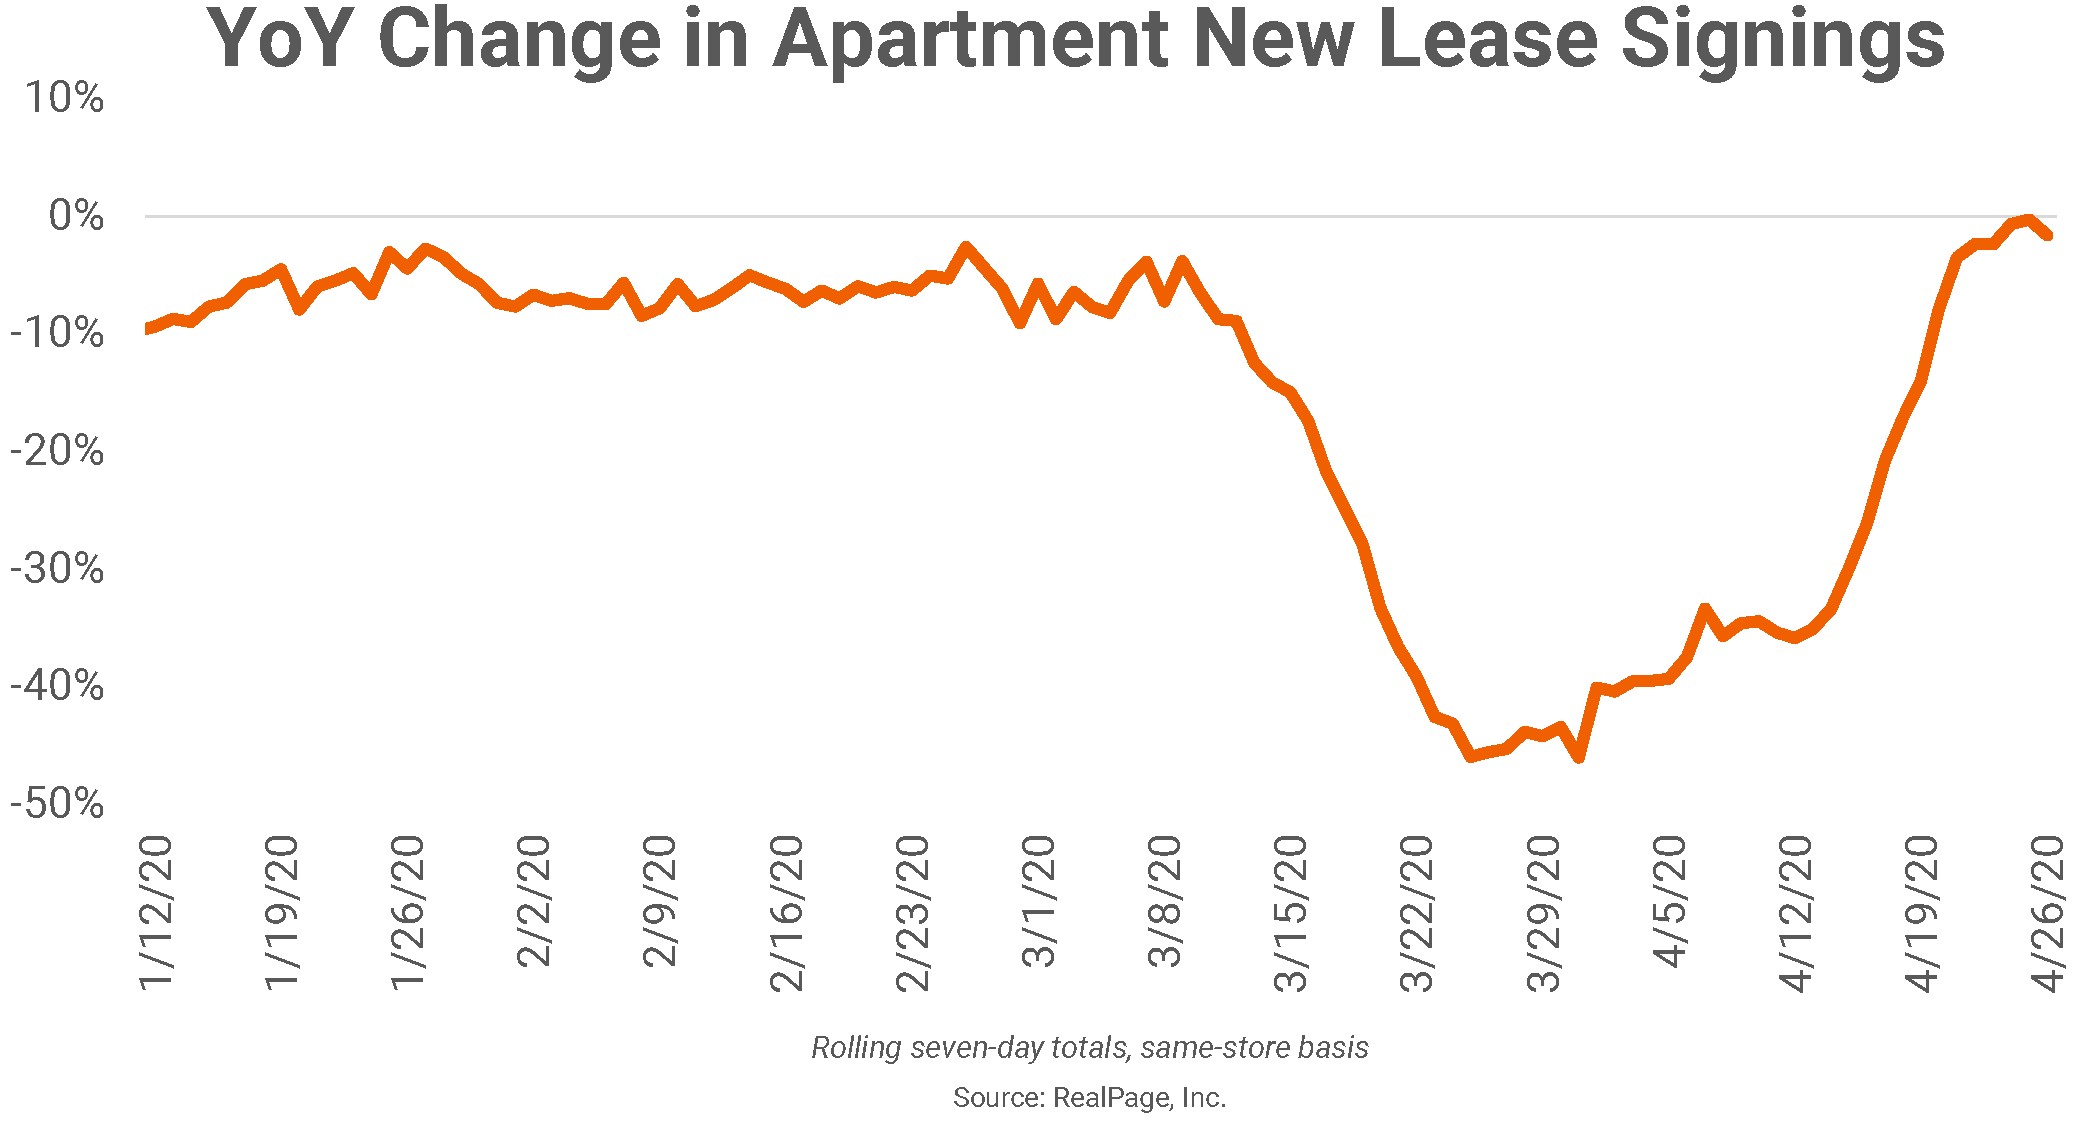 Weekly New Apartment Lease Signings Match 2019 Levels, While Rents Decline